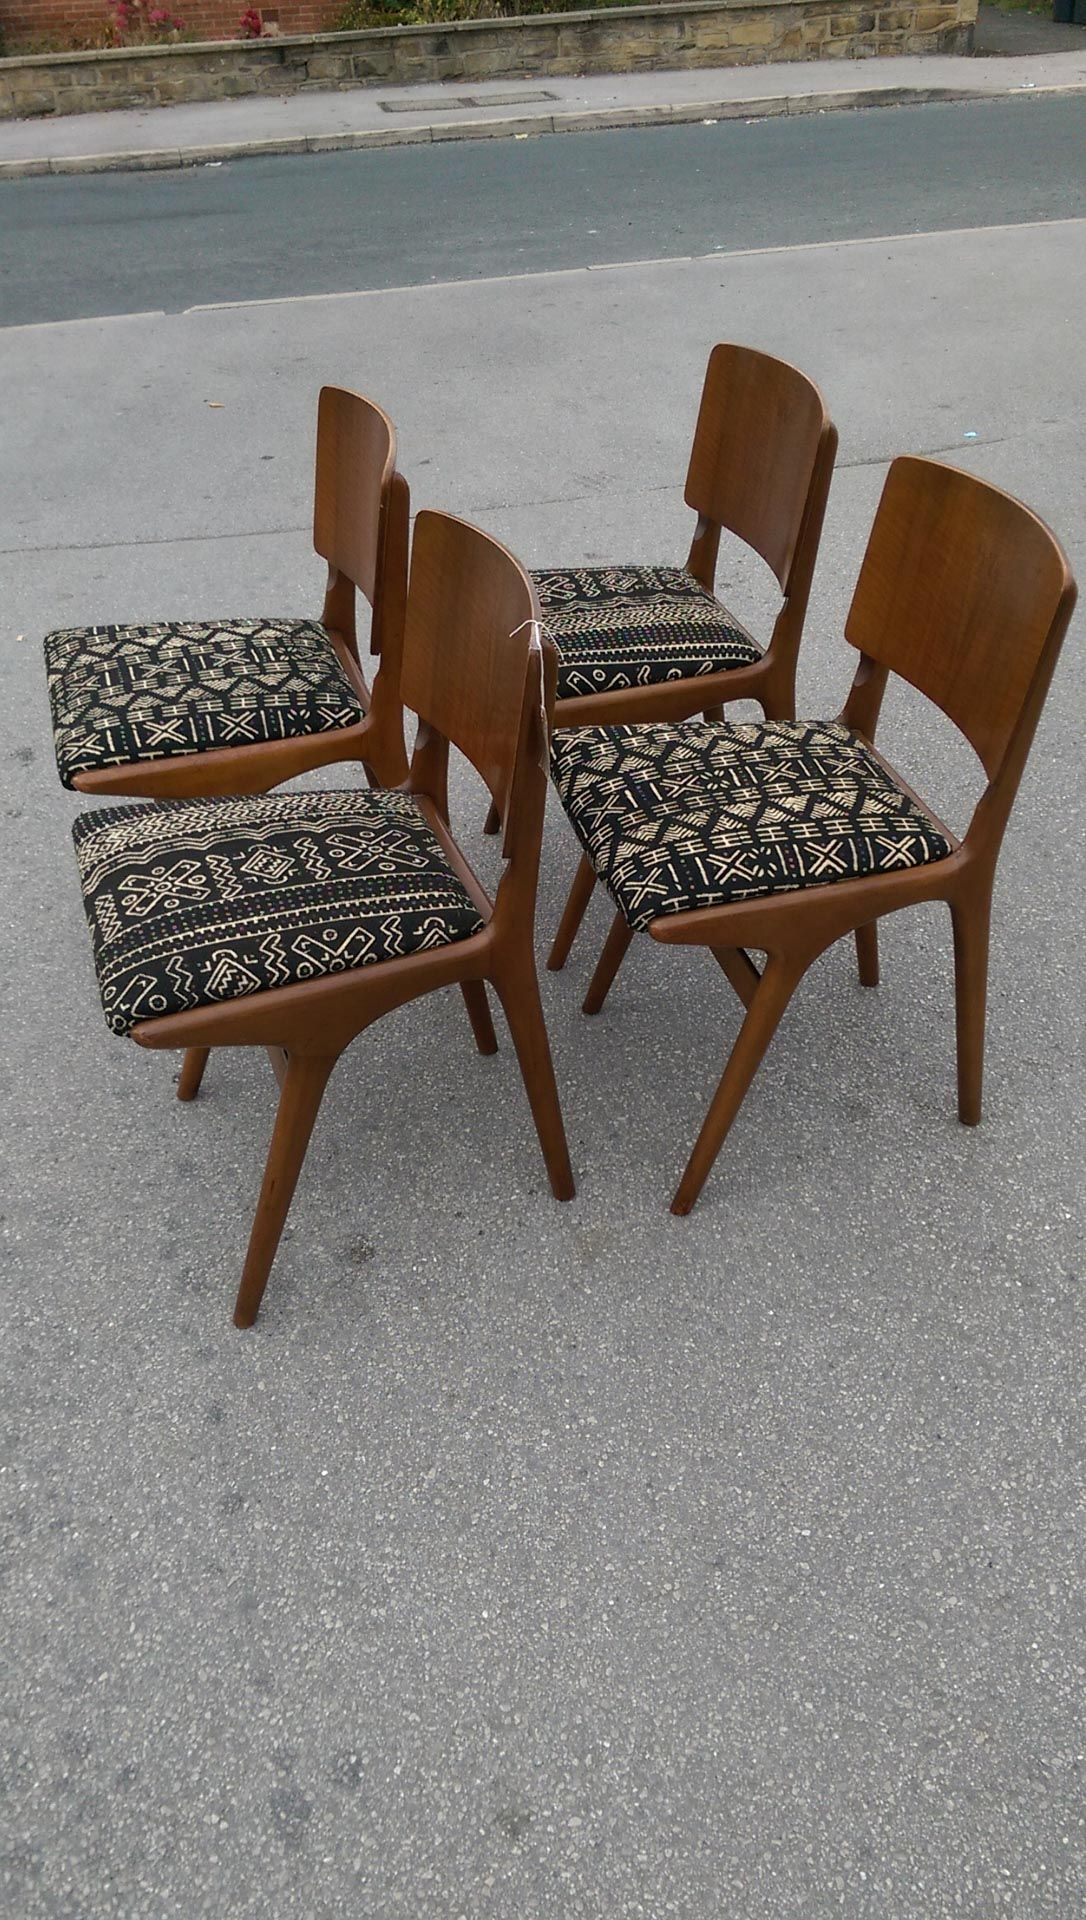 Set Of 4 Mid Century Teak Dining Chairs Reupholstered With African Mudcloth  05